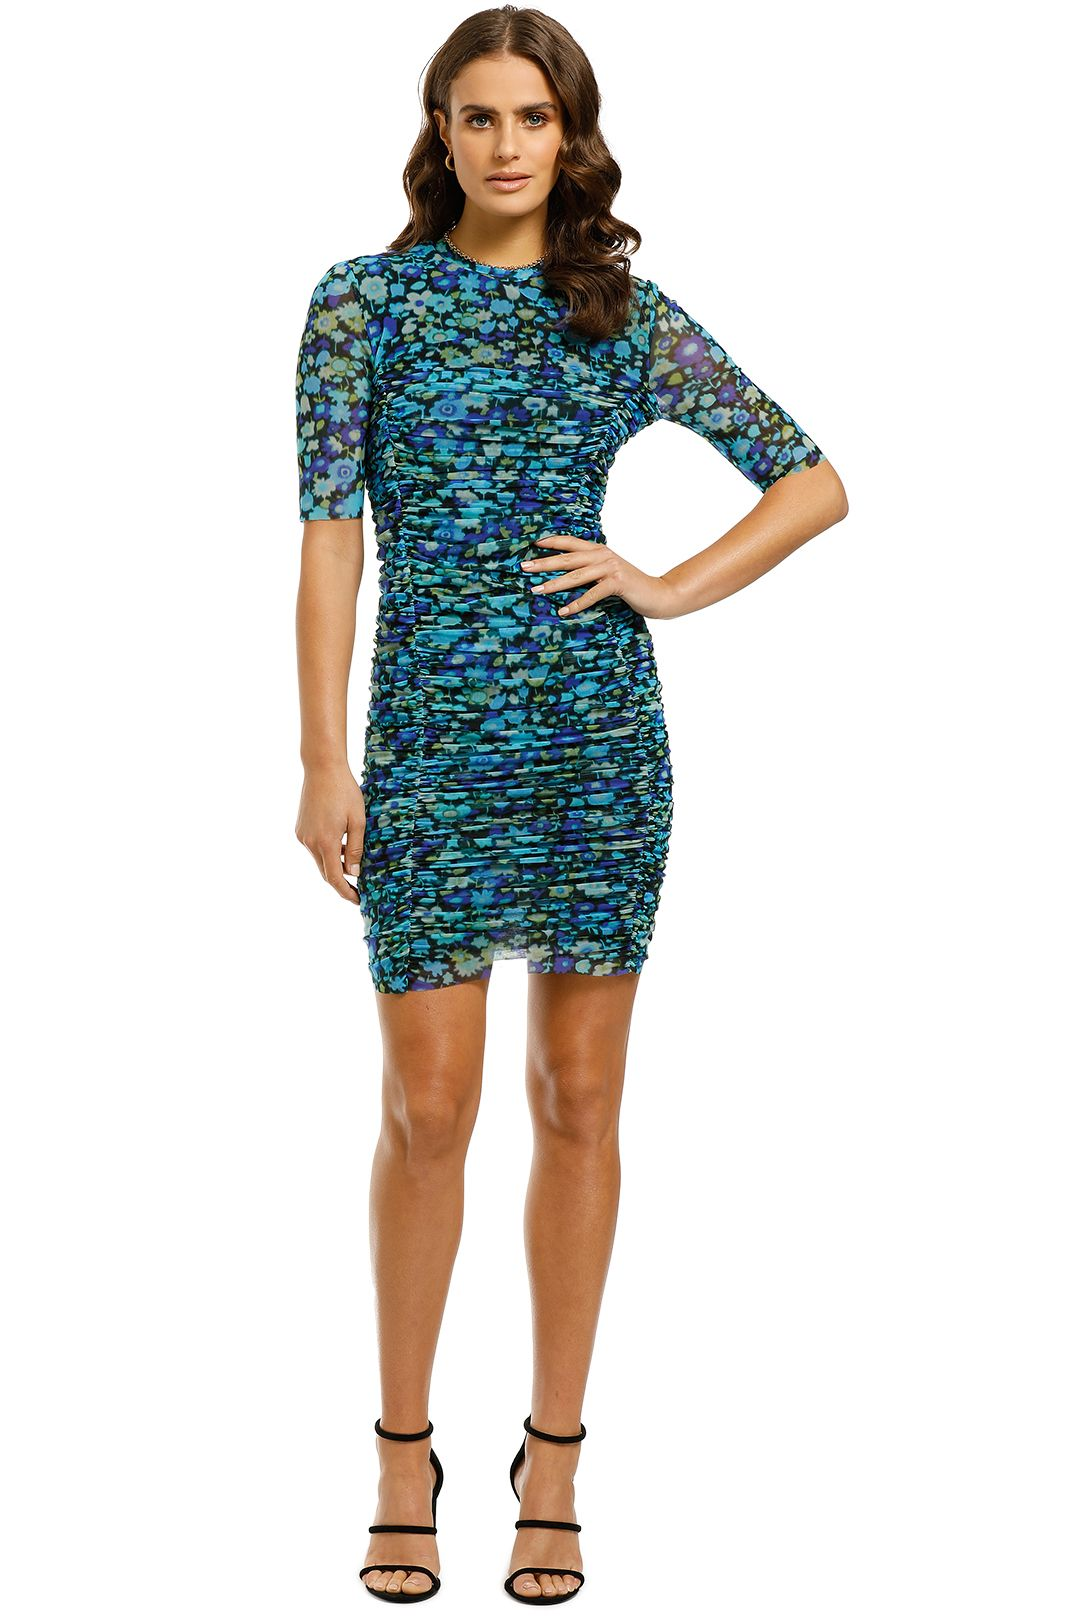 Ganni-Printed-Mesh-Dress-Azure-Blue-Front